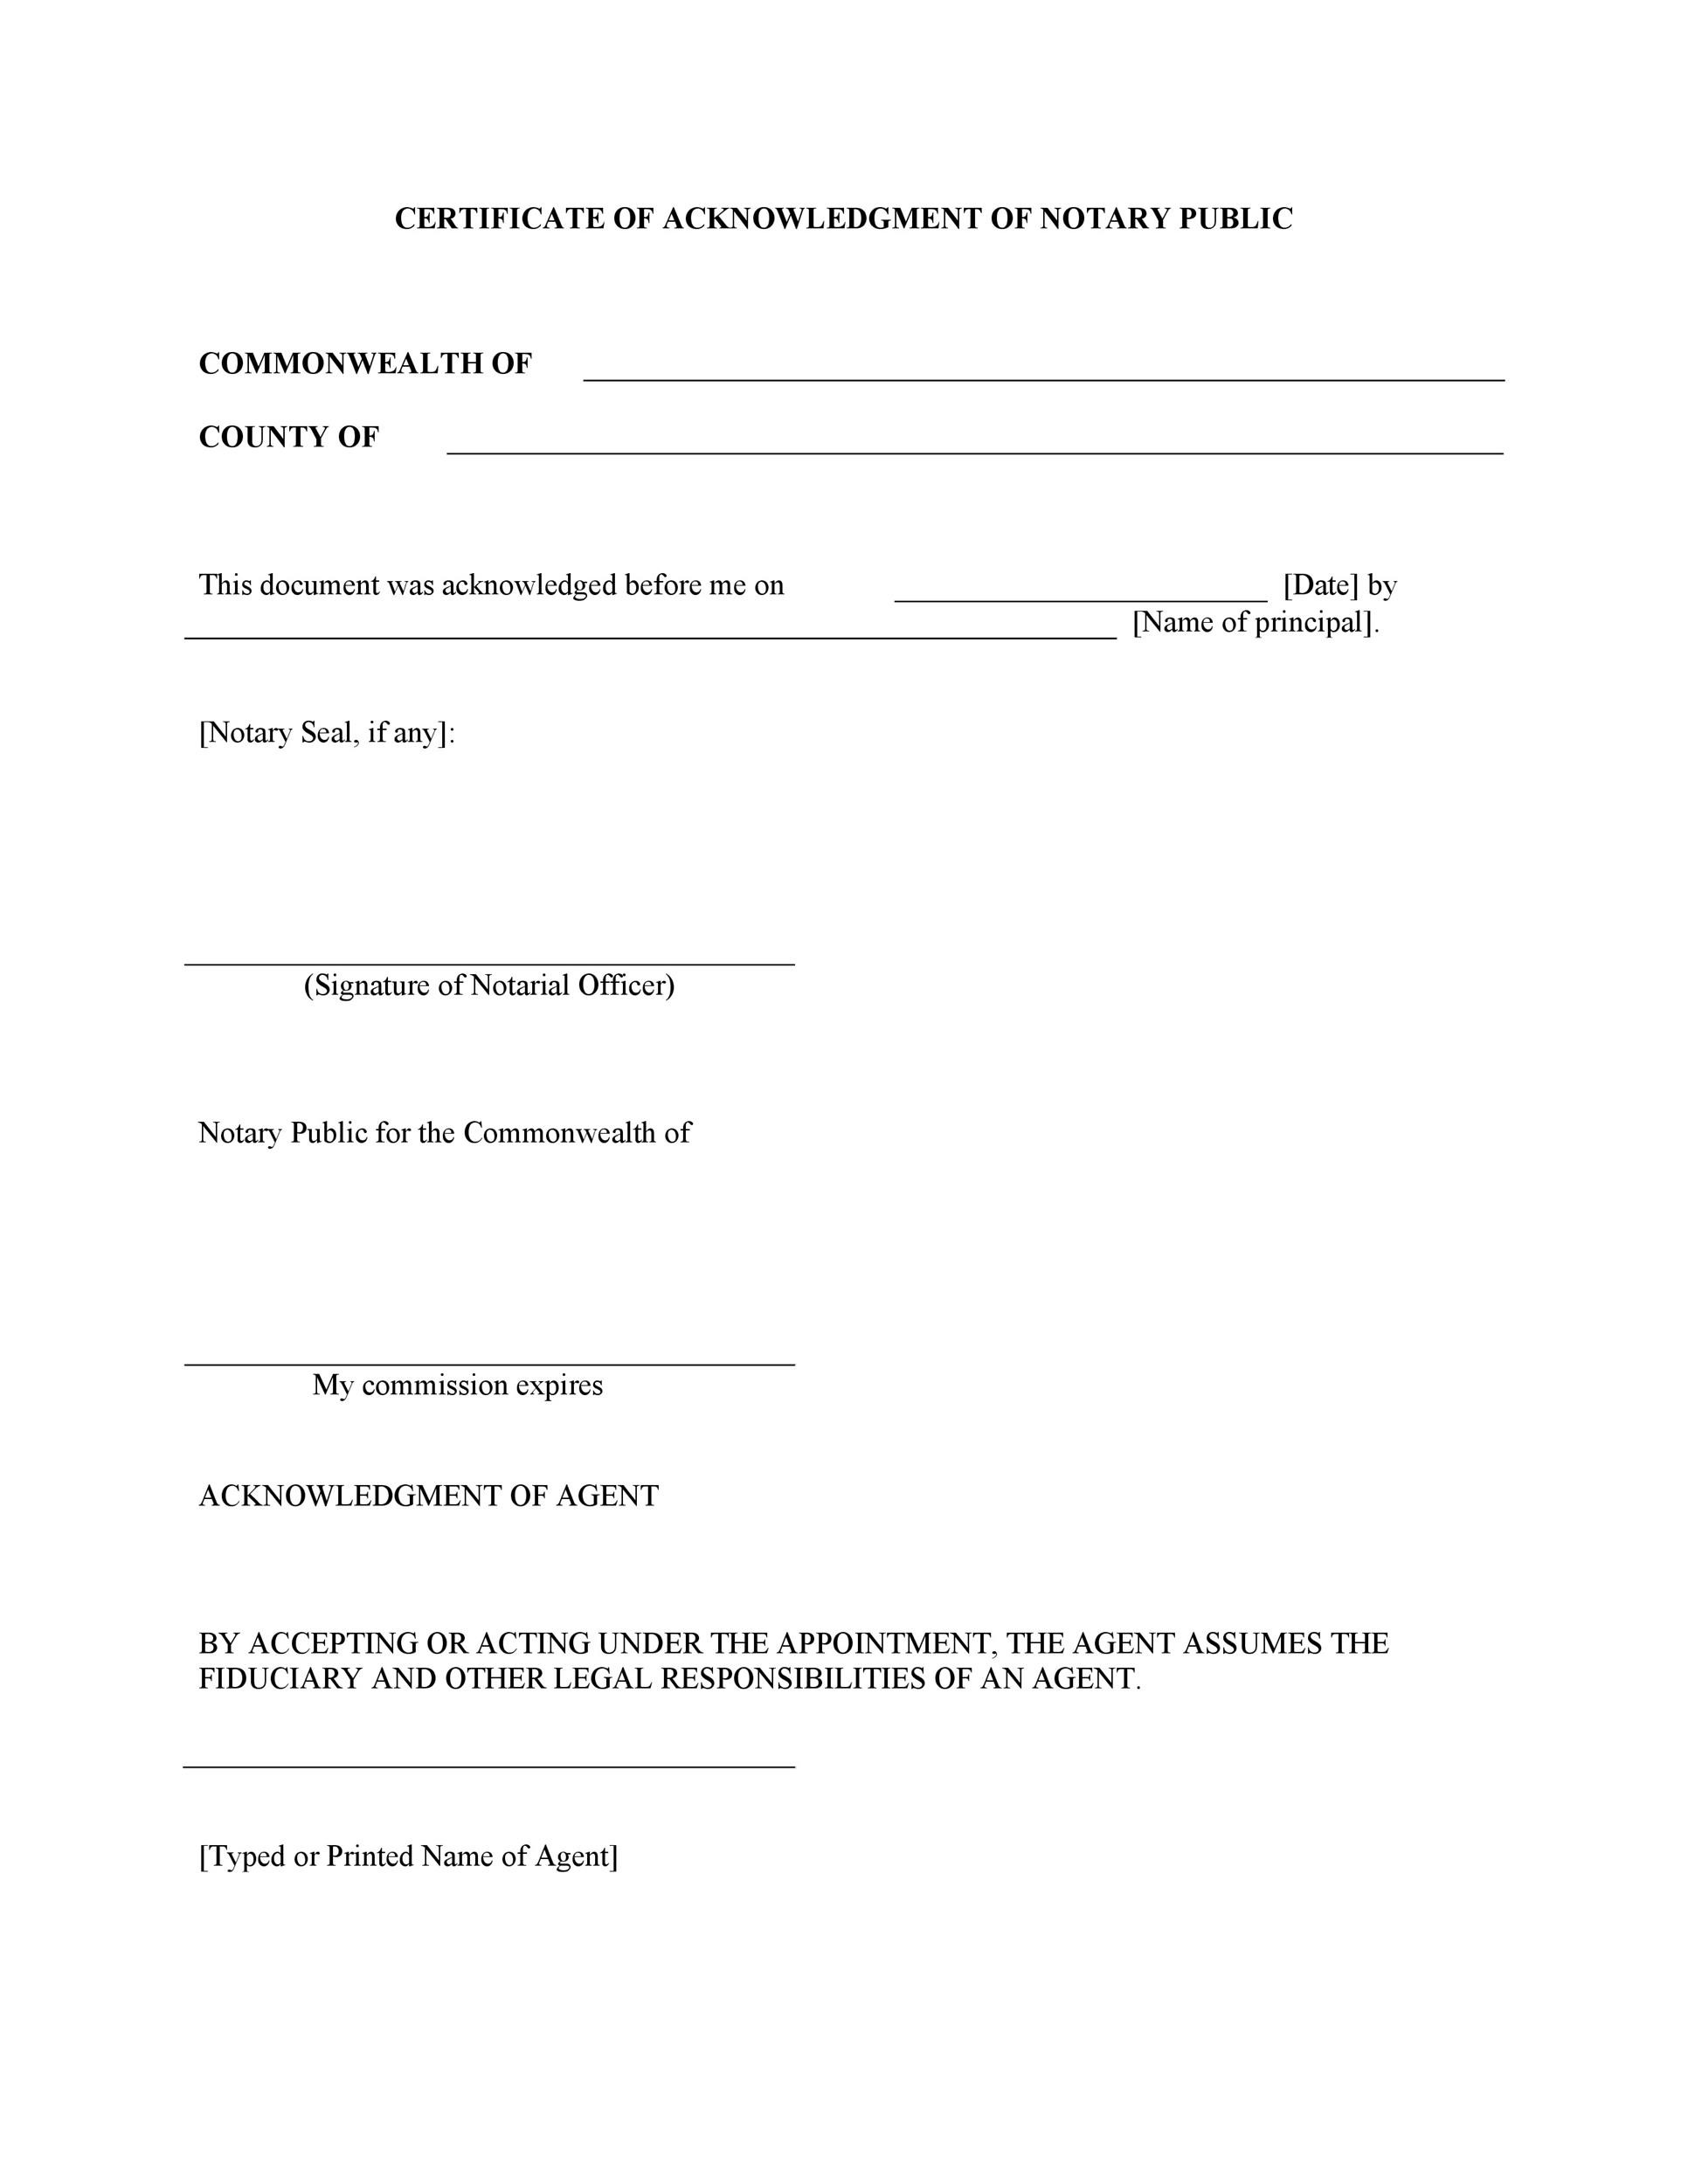 Free notary acknowledgement 14